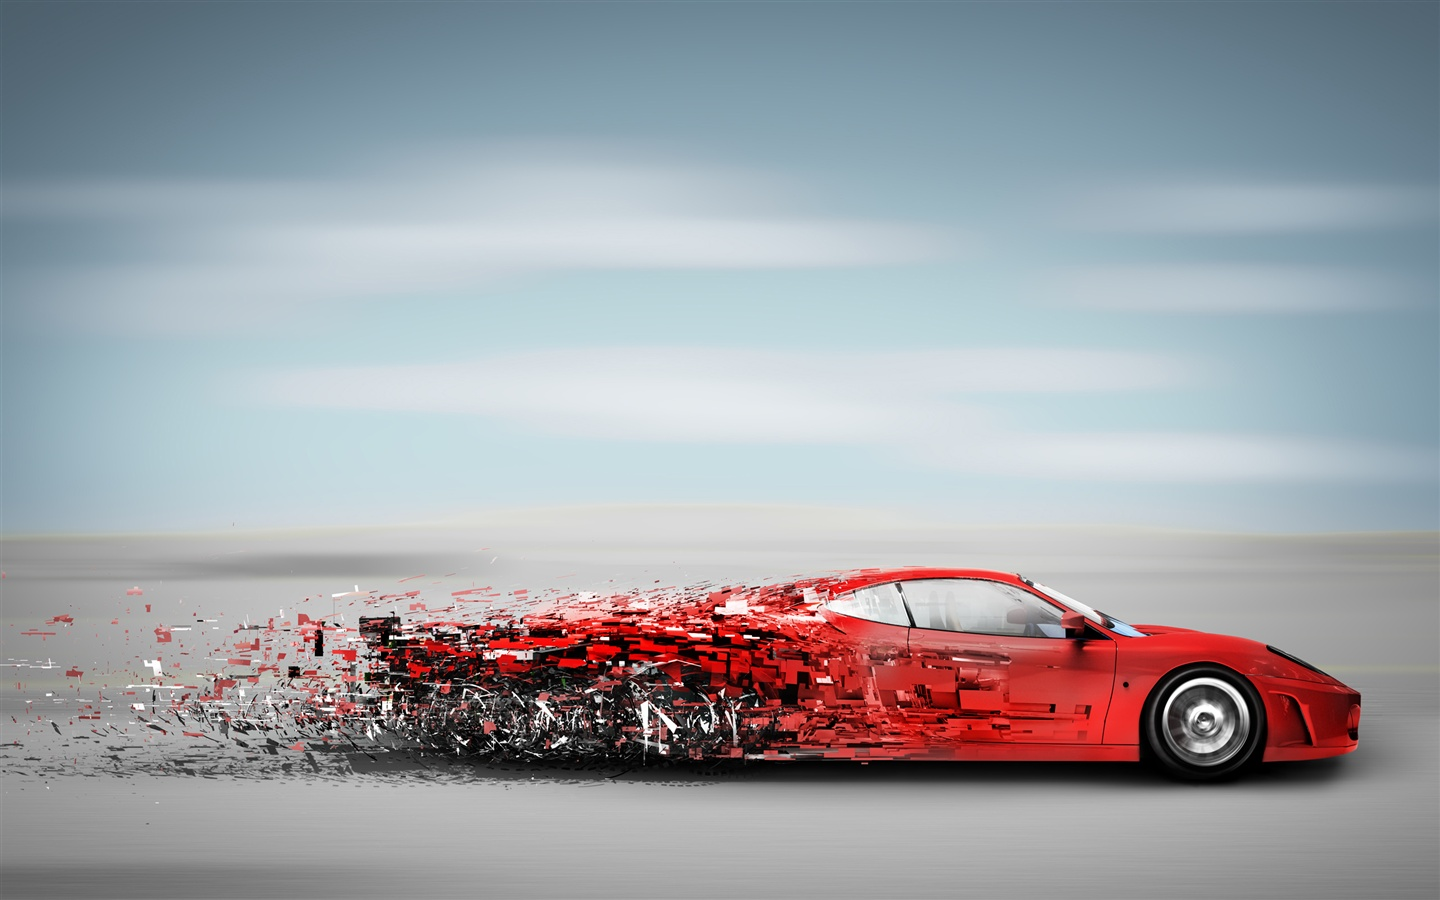 Wallpaper Red Sports Car In High Speed Running Debris